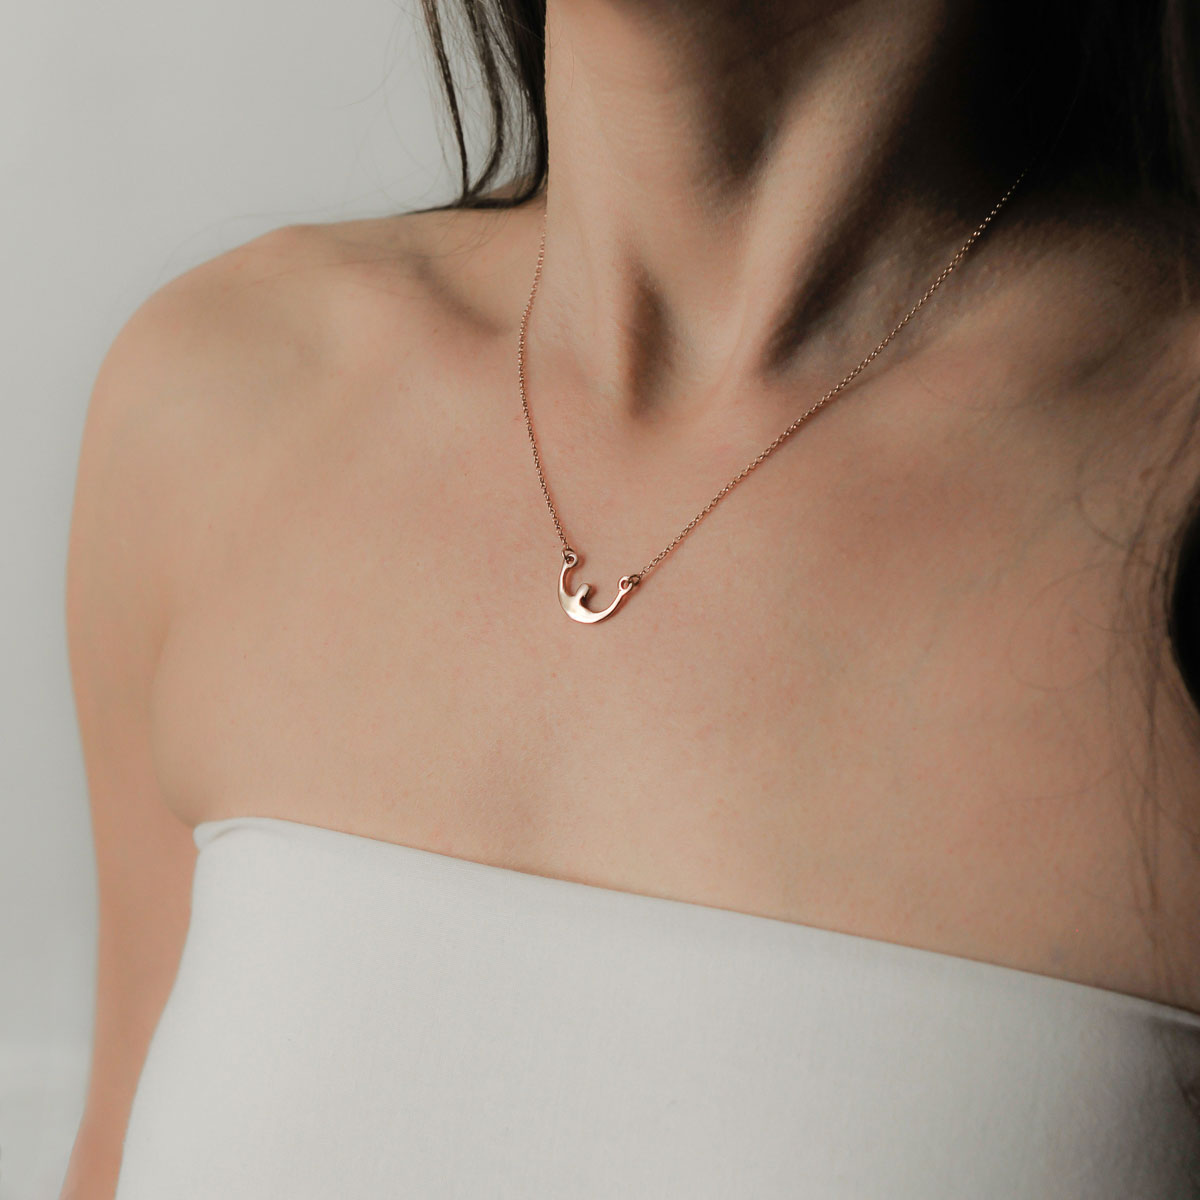 """Boat"" gold plated silver necklace. Design and handmade for Bead A Boo jewelry by Katerina Glinou."